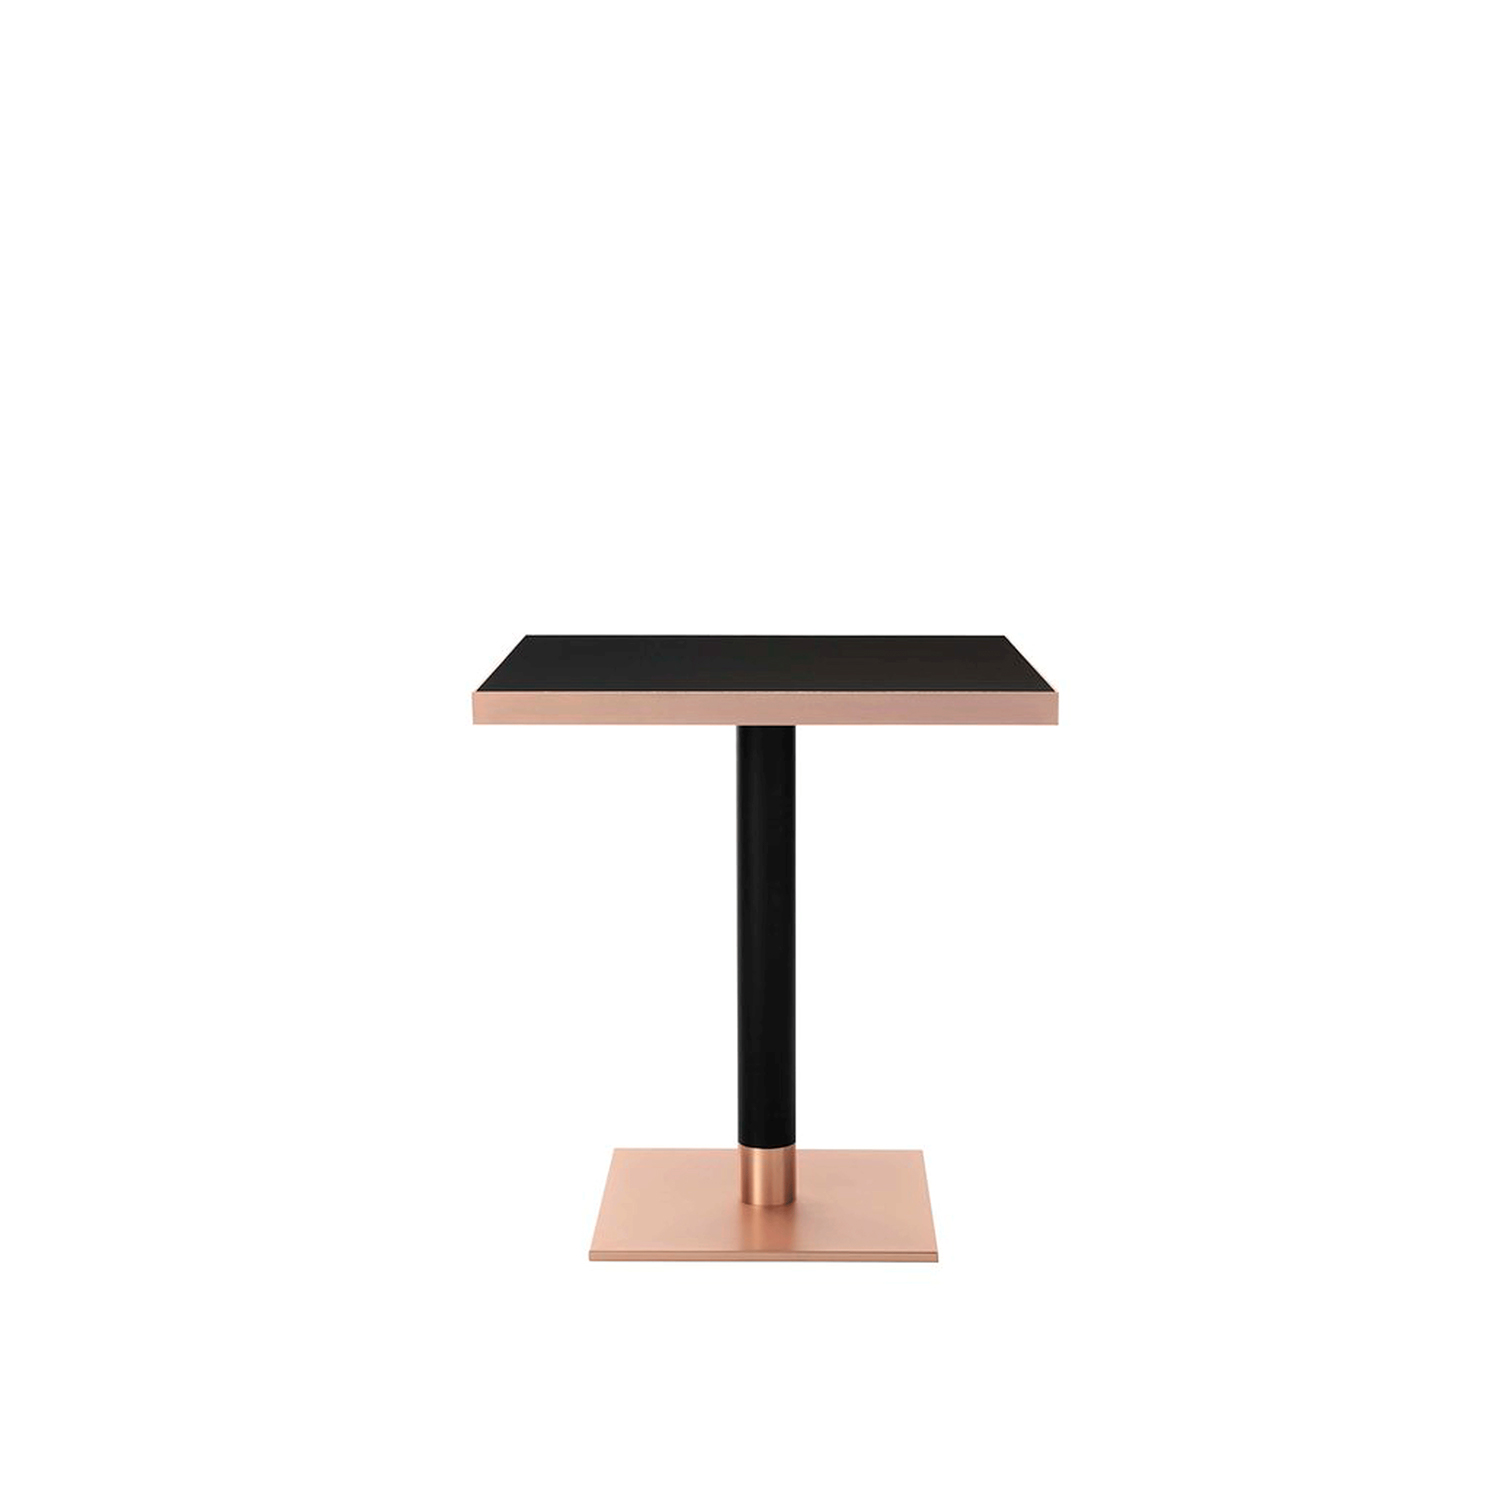 Sherry Table - This elegant bar table can be used both in commercial spaces or in a home as a countertop or breakfast nook. Its central stem in metal is lacquered black with epoxy powders. The square base and the frame of the tabletop are in metal with a copper finish. The tabletop in wood features the same black colour as the structure. This piece is available in various customizations: the variable heights, a base and top frame with either a bronze or brass finish, a single stem in solid wood with a lacquered finish, or a marble tabletop. Please refer to the Concierge about these options and pricing.  | Matter of Stuff